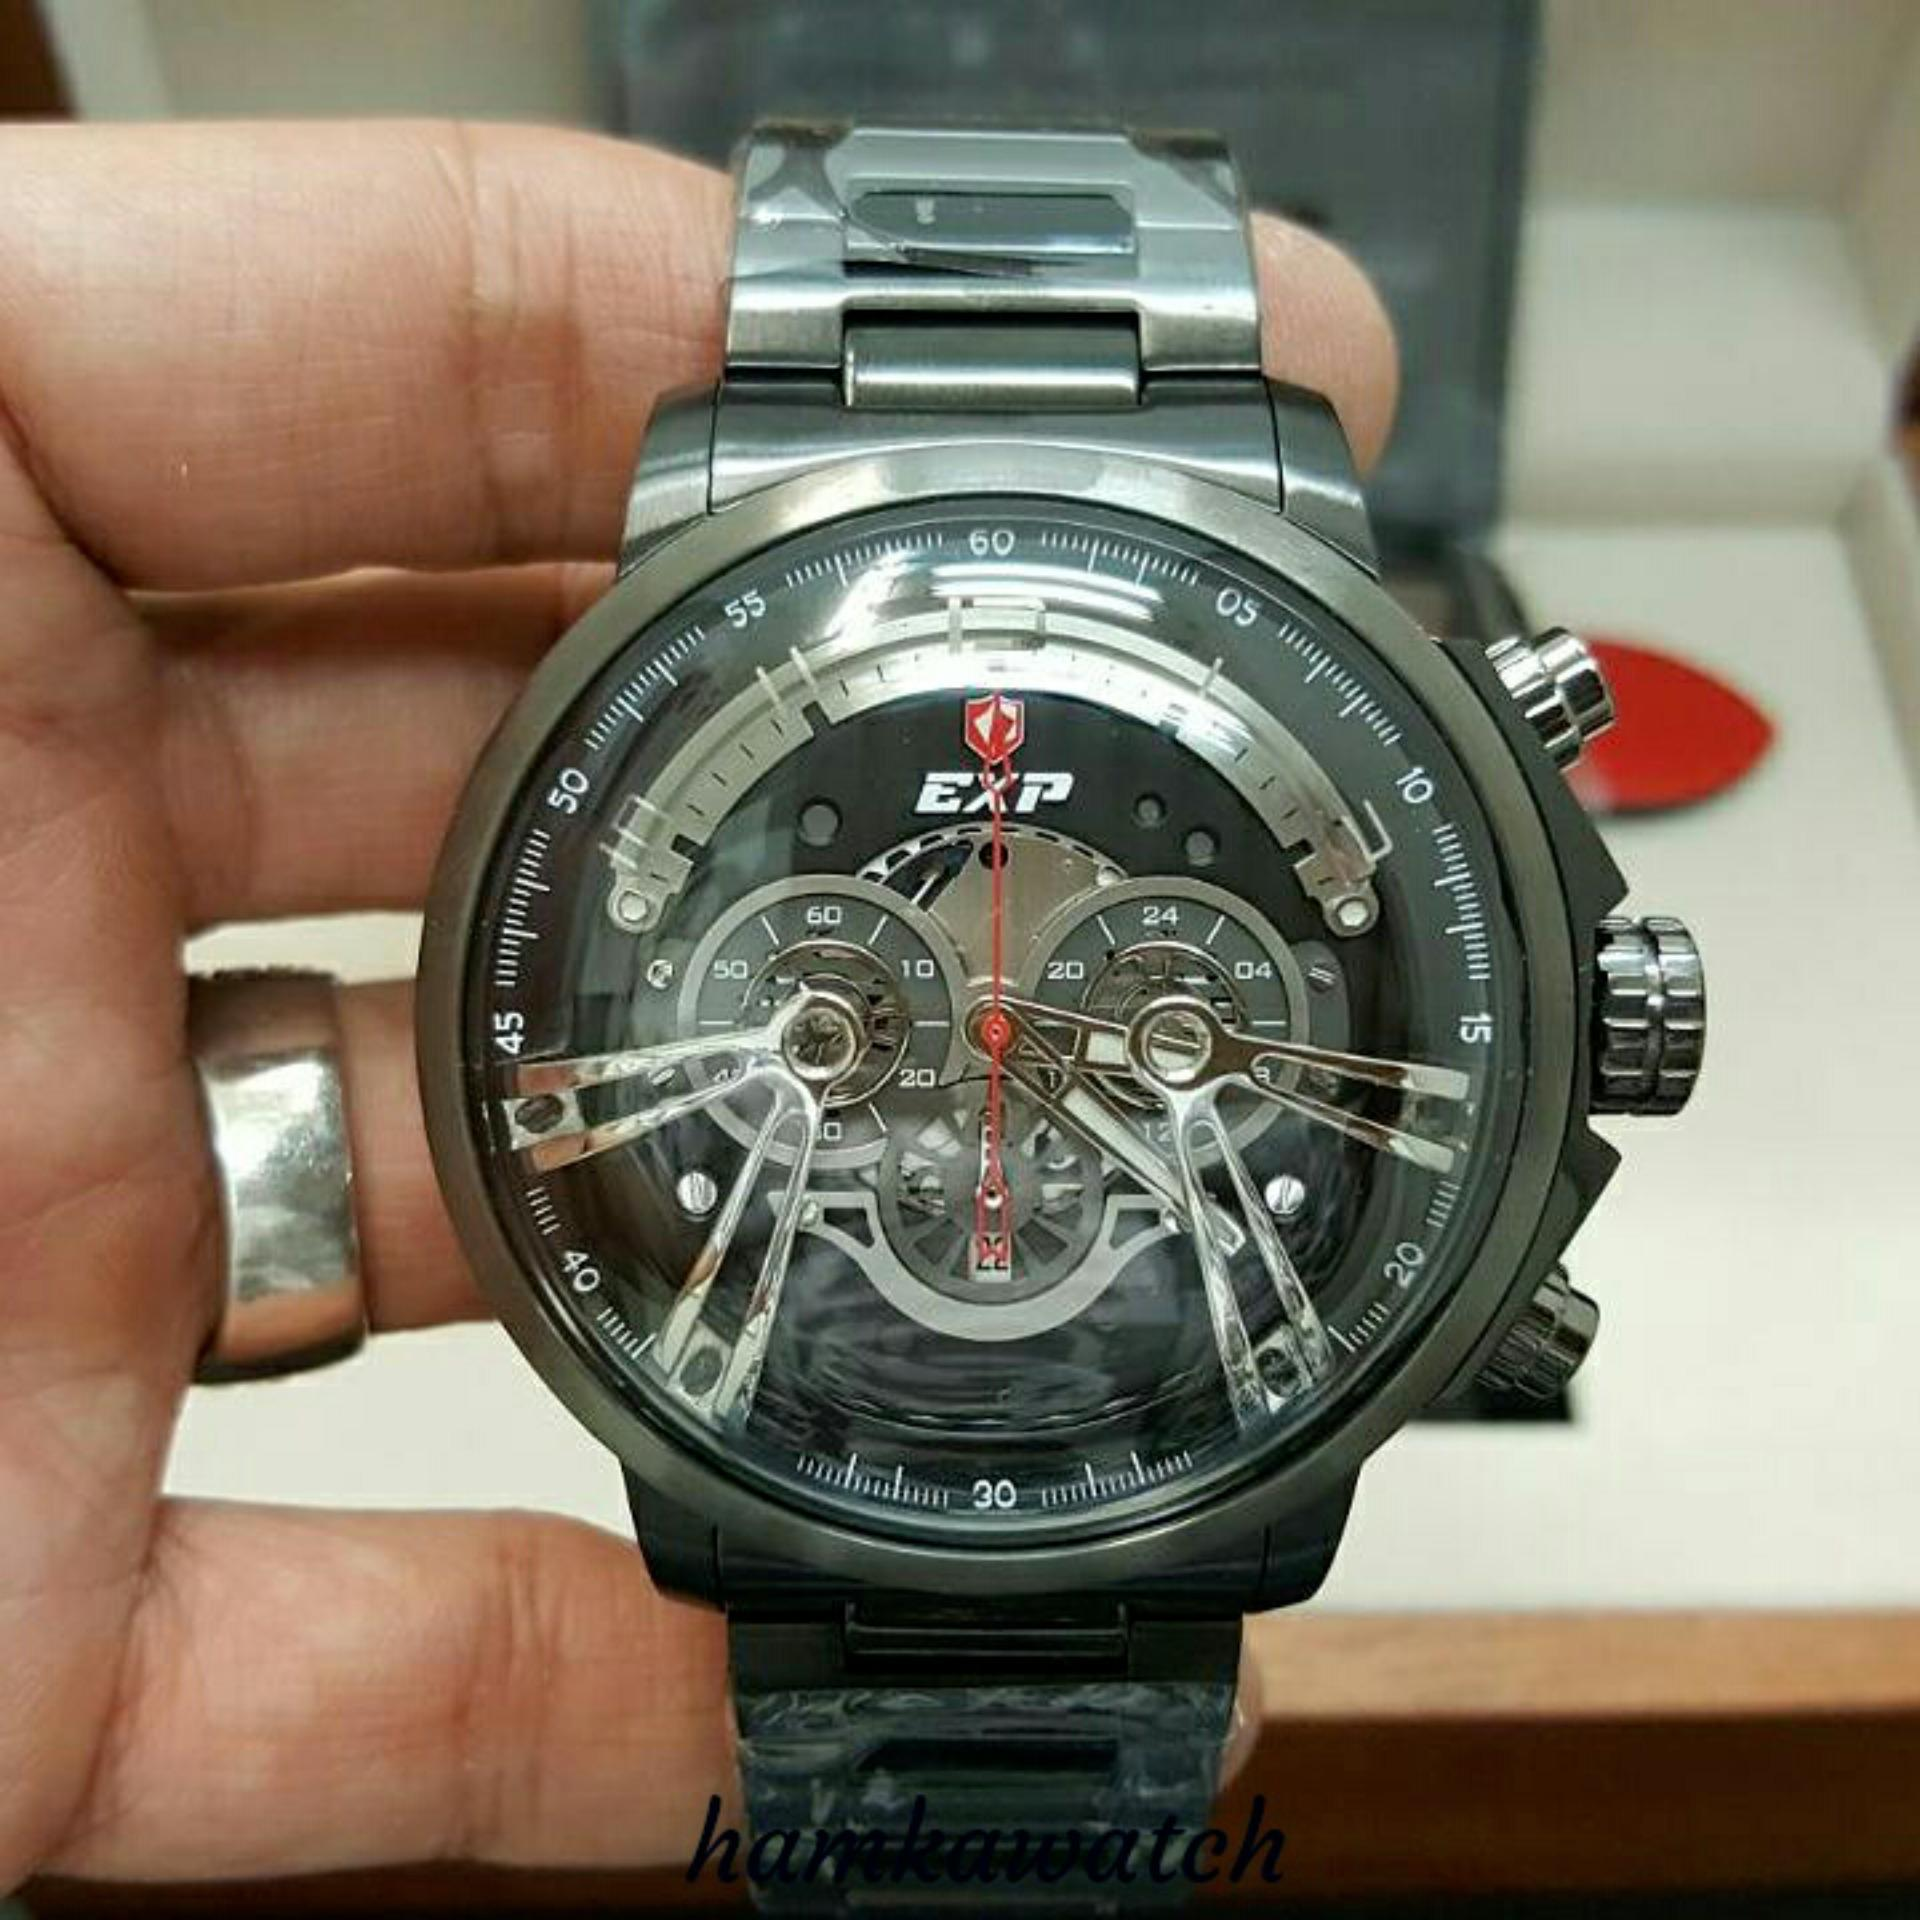 Expedition Jam Tangan Pria E6725m Silver Stainless Steel E6392 Black Leather Brown Original E6734